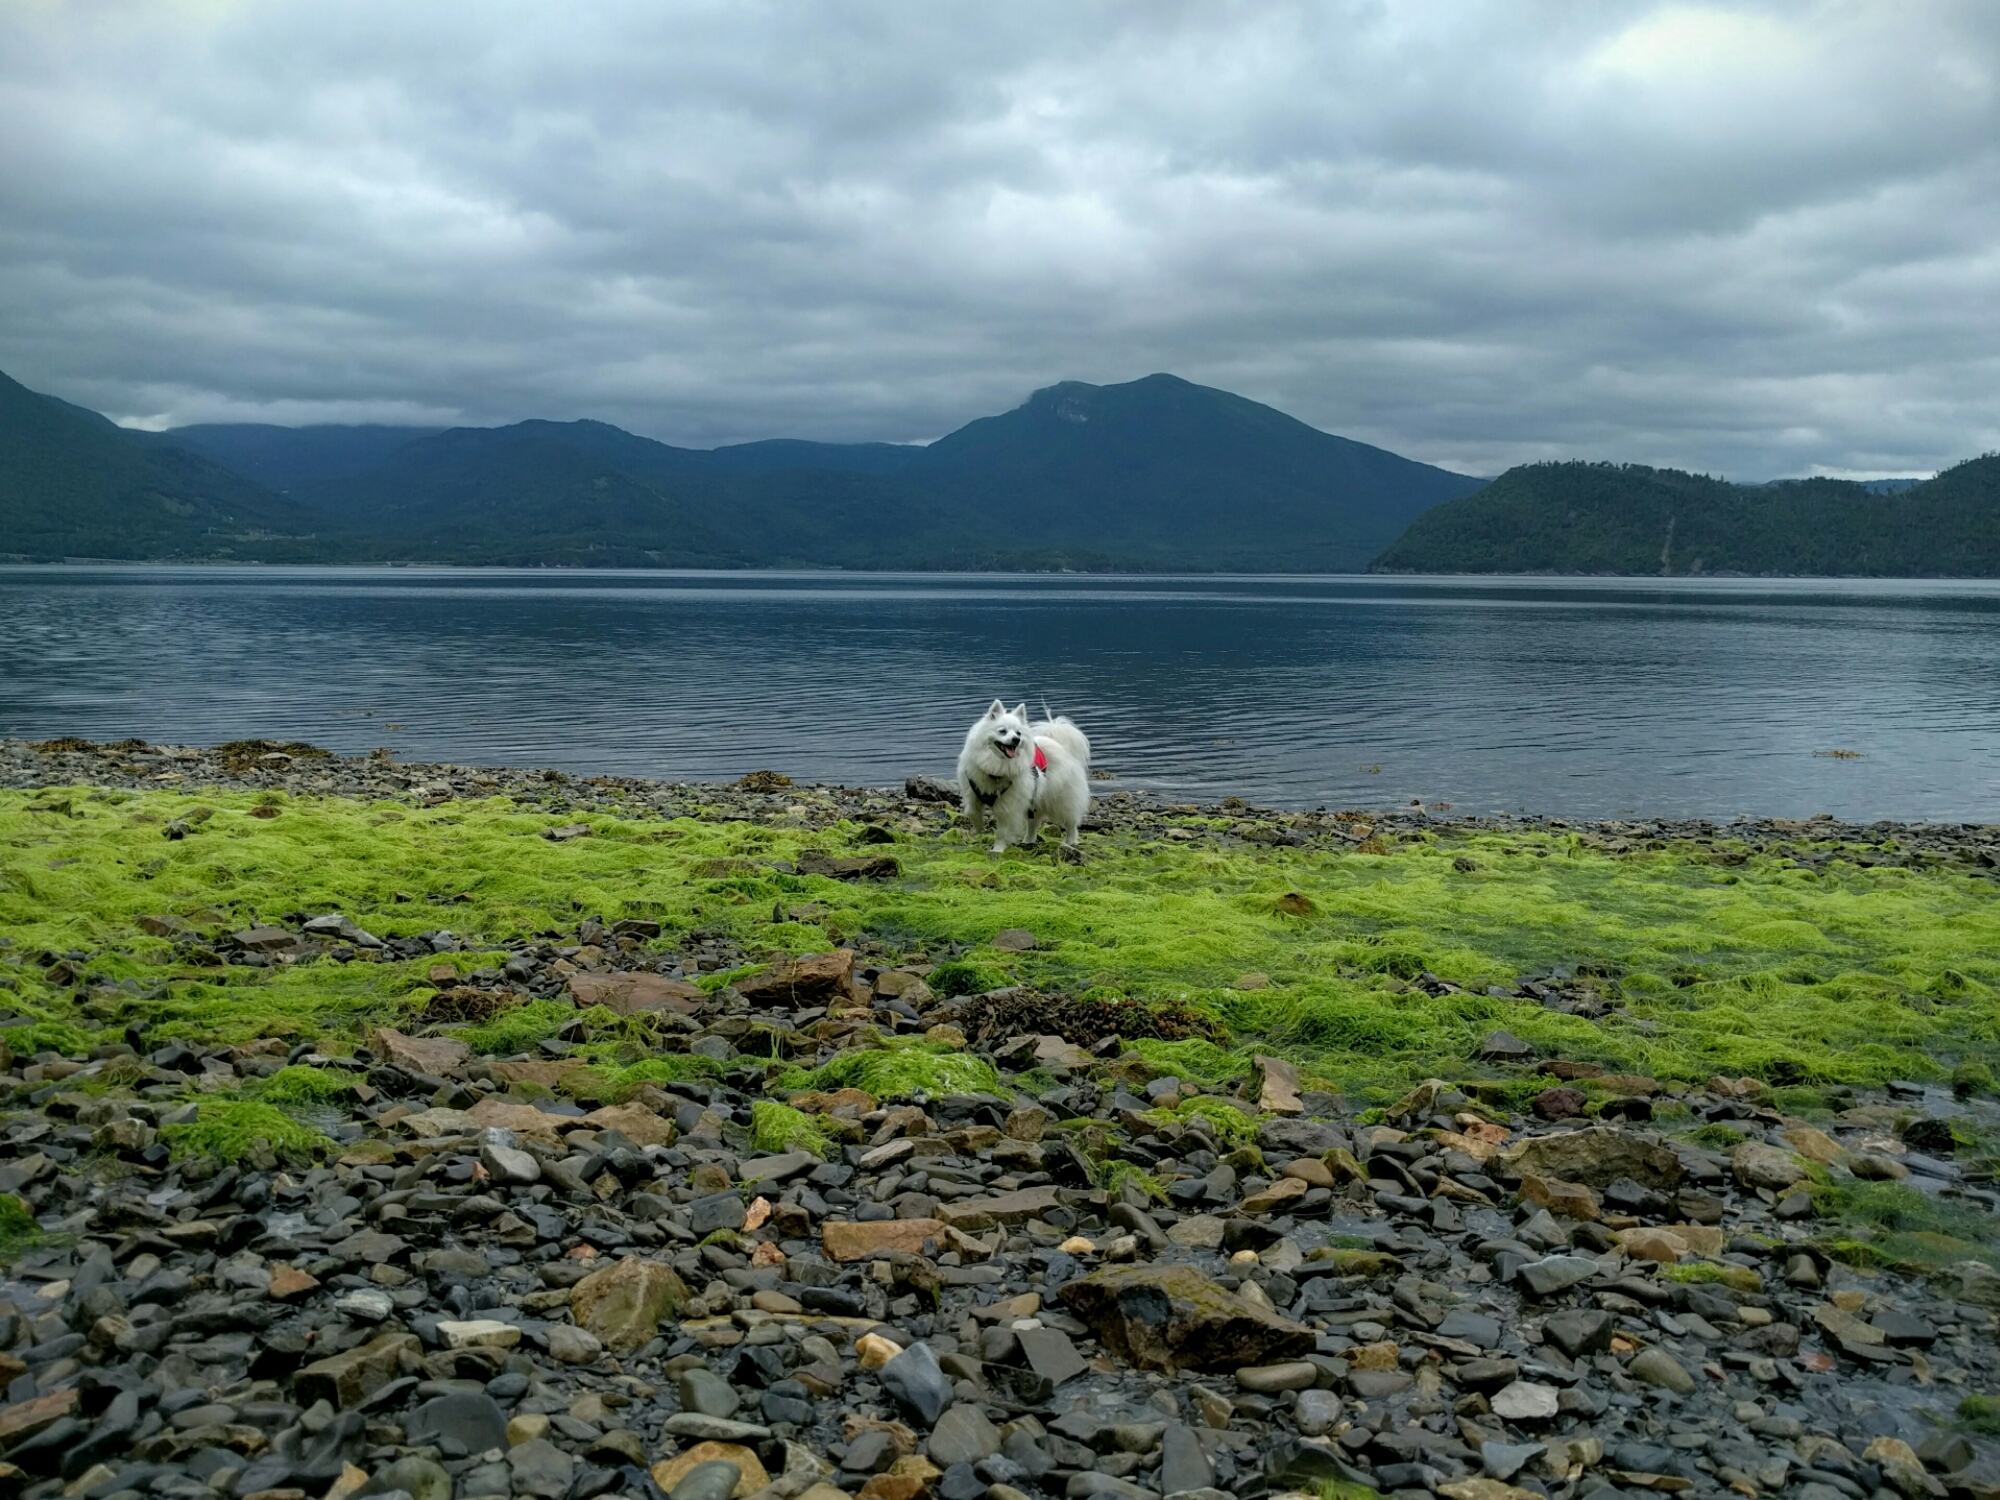 Fletcher plays on the beach at Trout River in Gros Morne, NL.